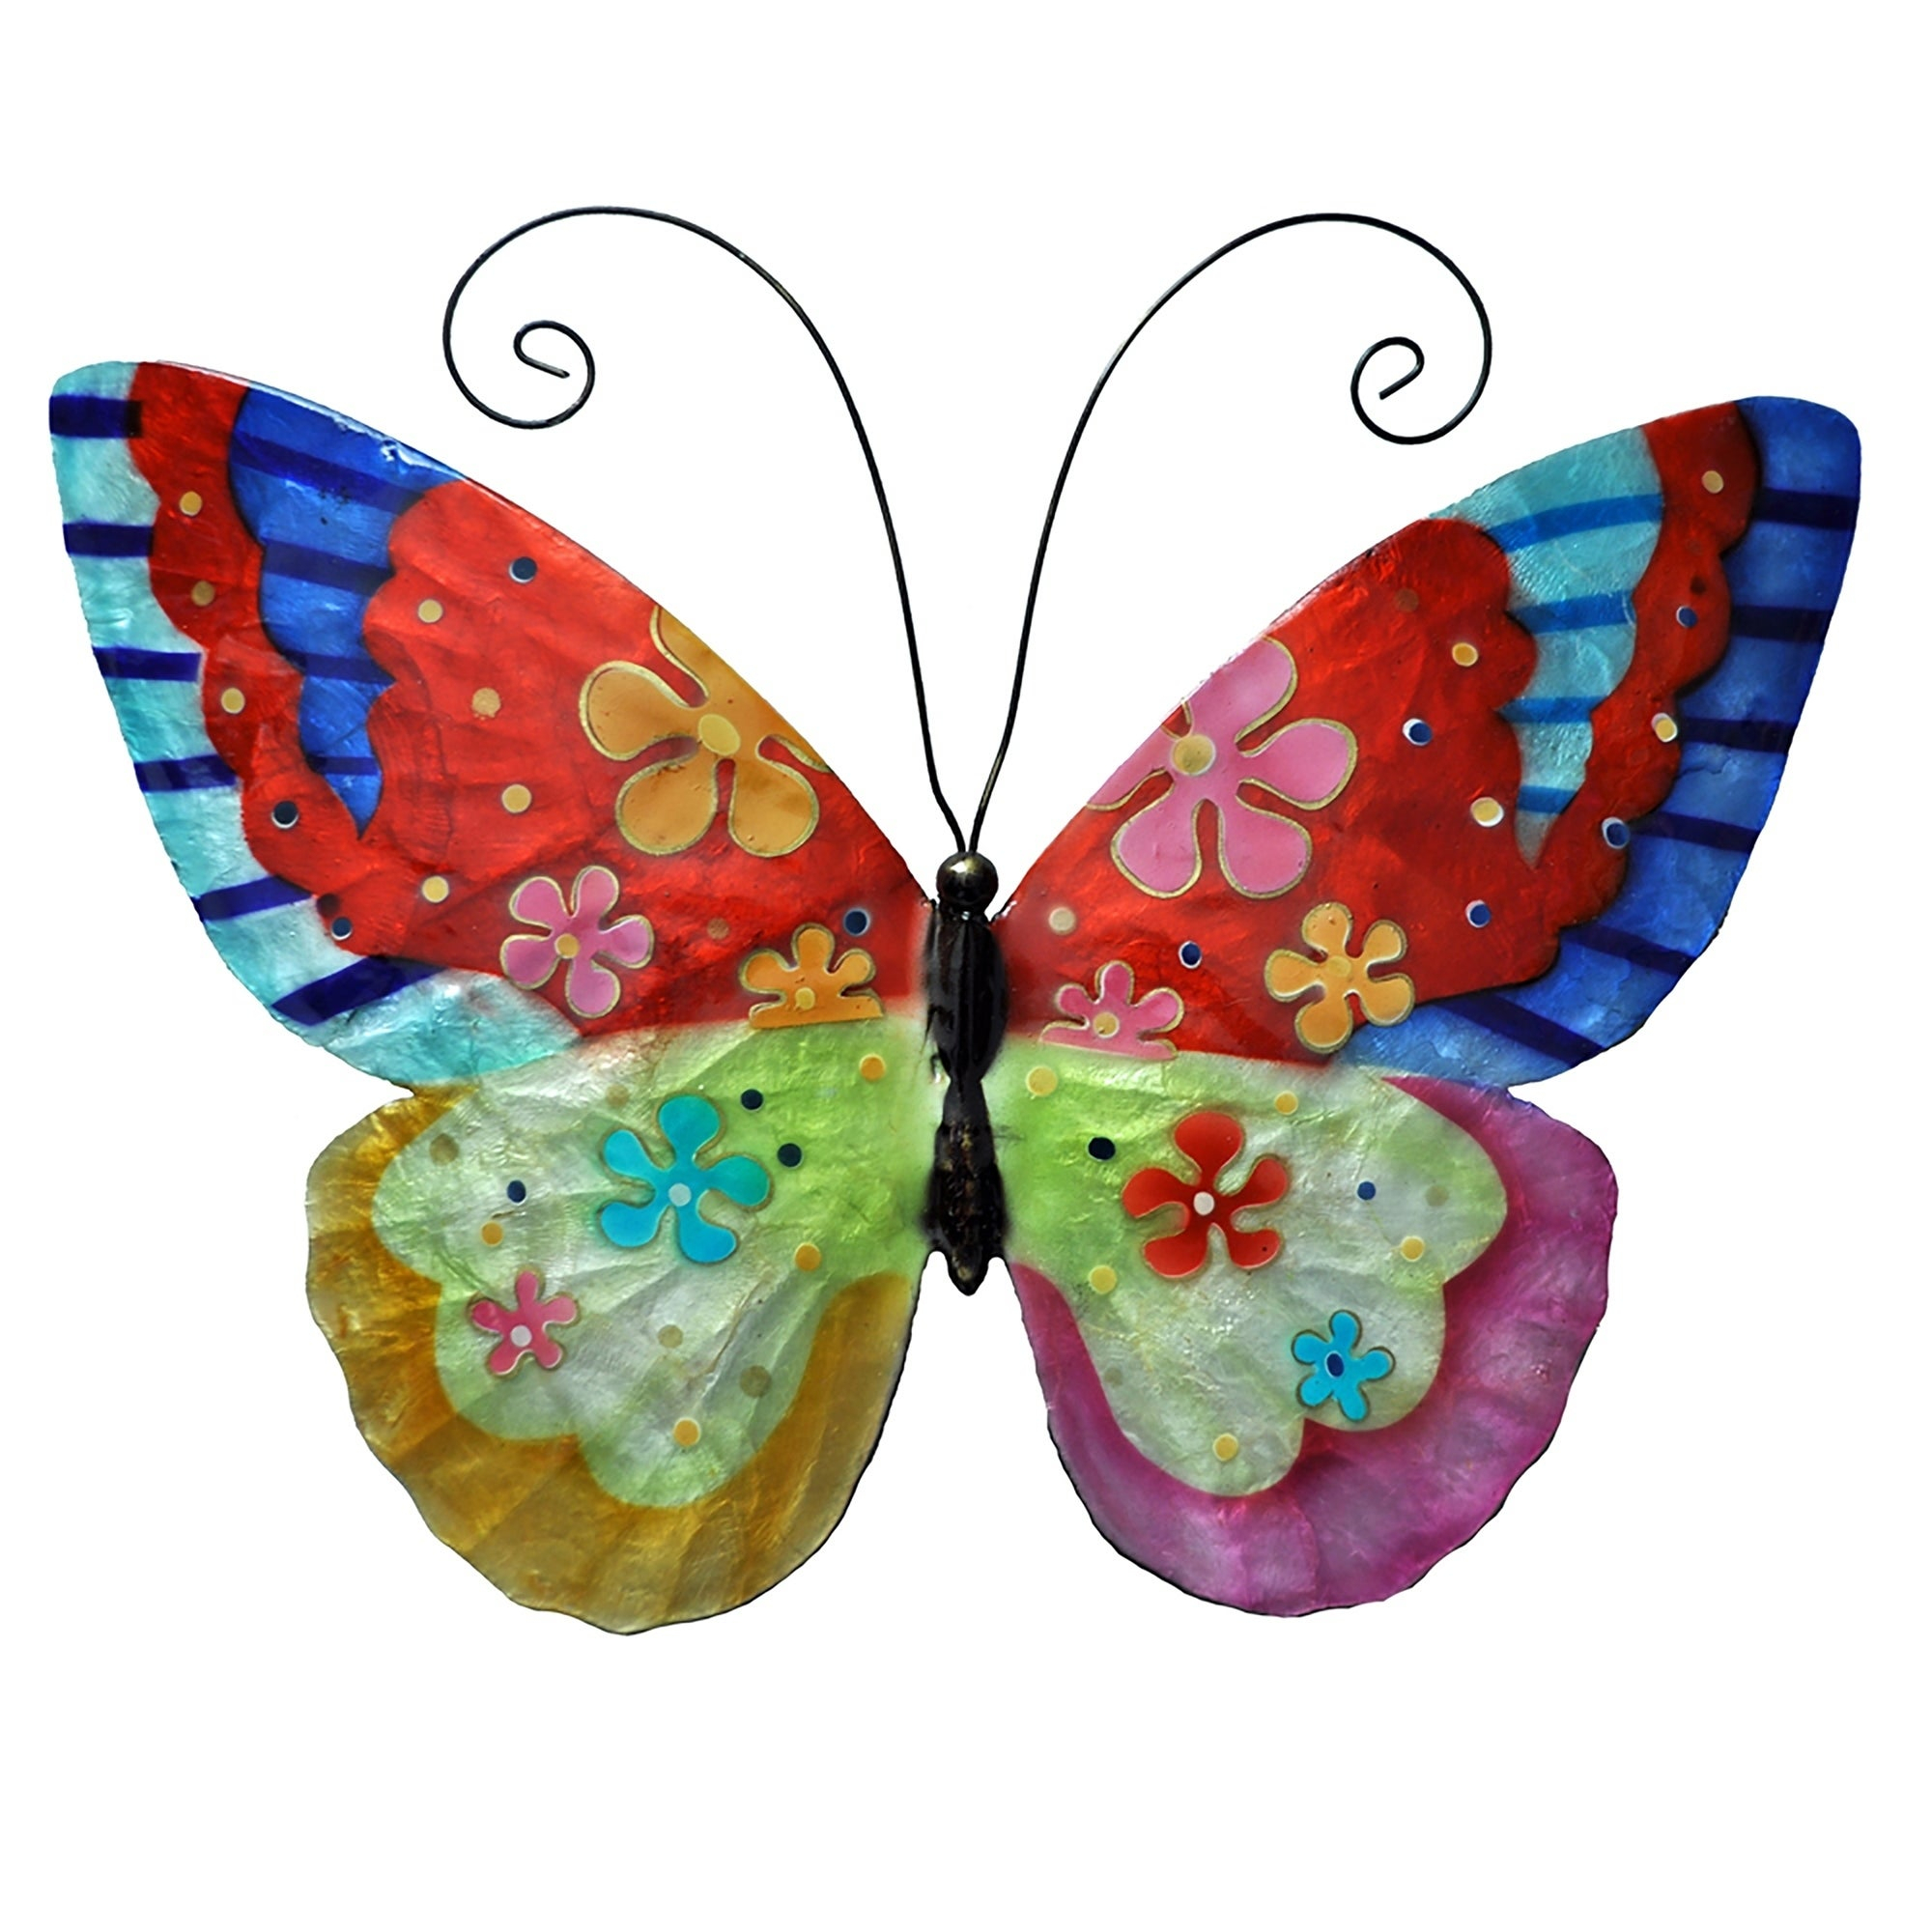 3 Piece Capri Butterfly Wall Decor Sets Inside Newest Metal Wall Sculptures (Gallery 12 of 20)